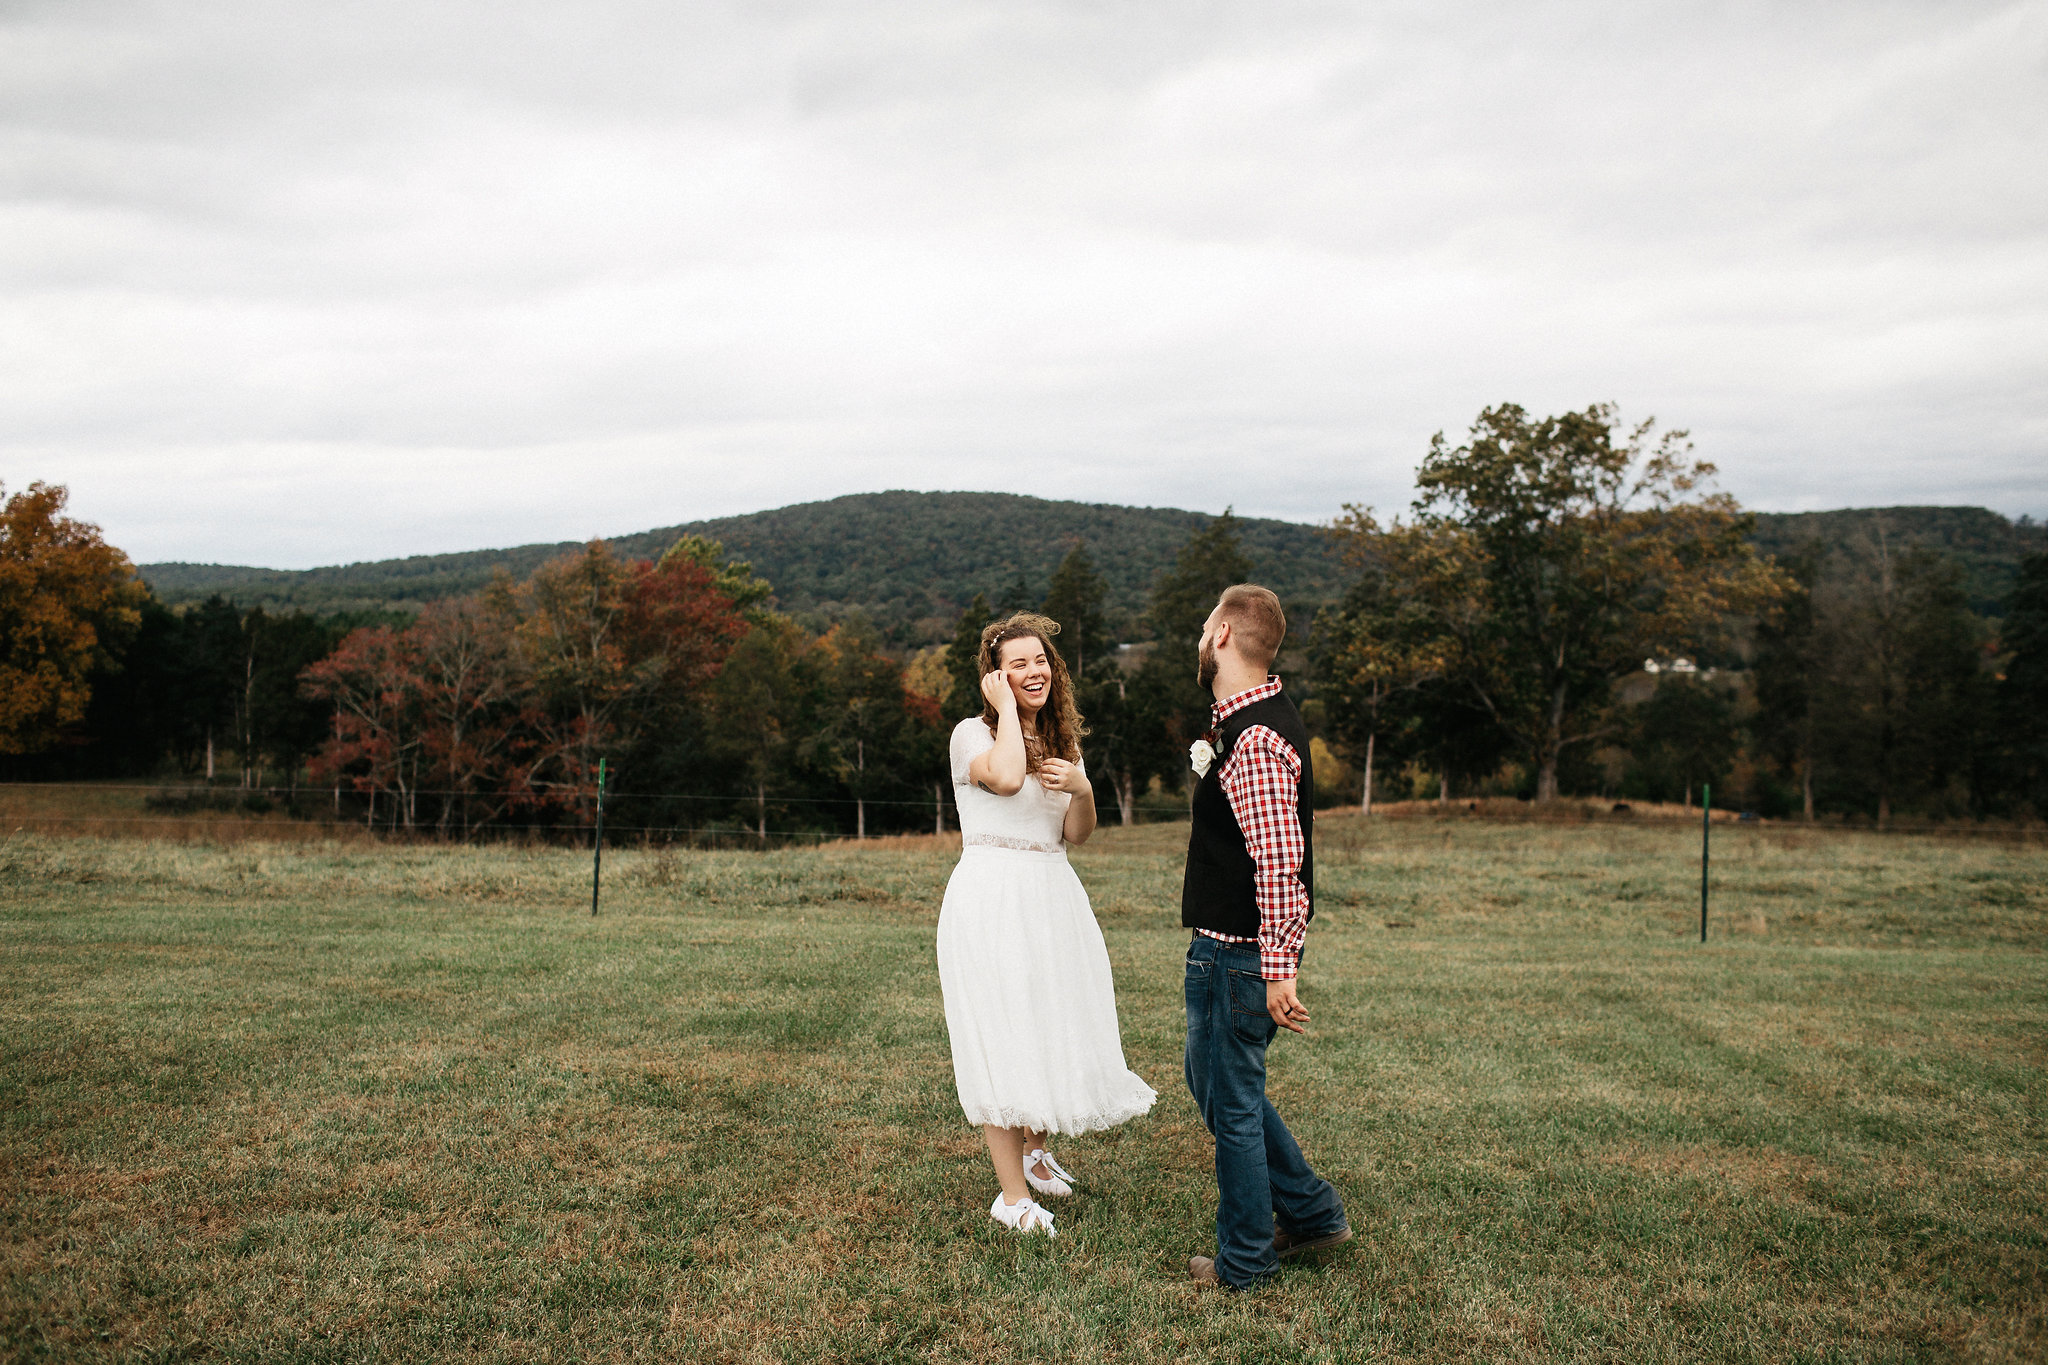 Caitlin&CodyMarried2017-11-03at19.19.40PM48.jpg